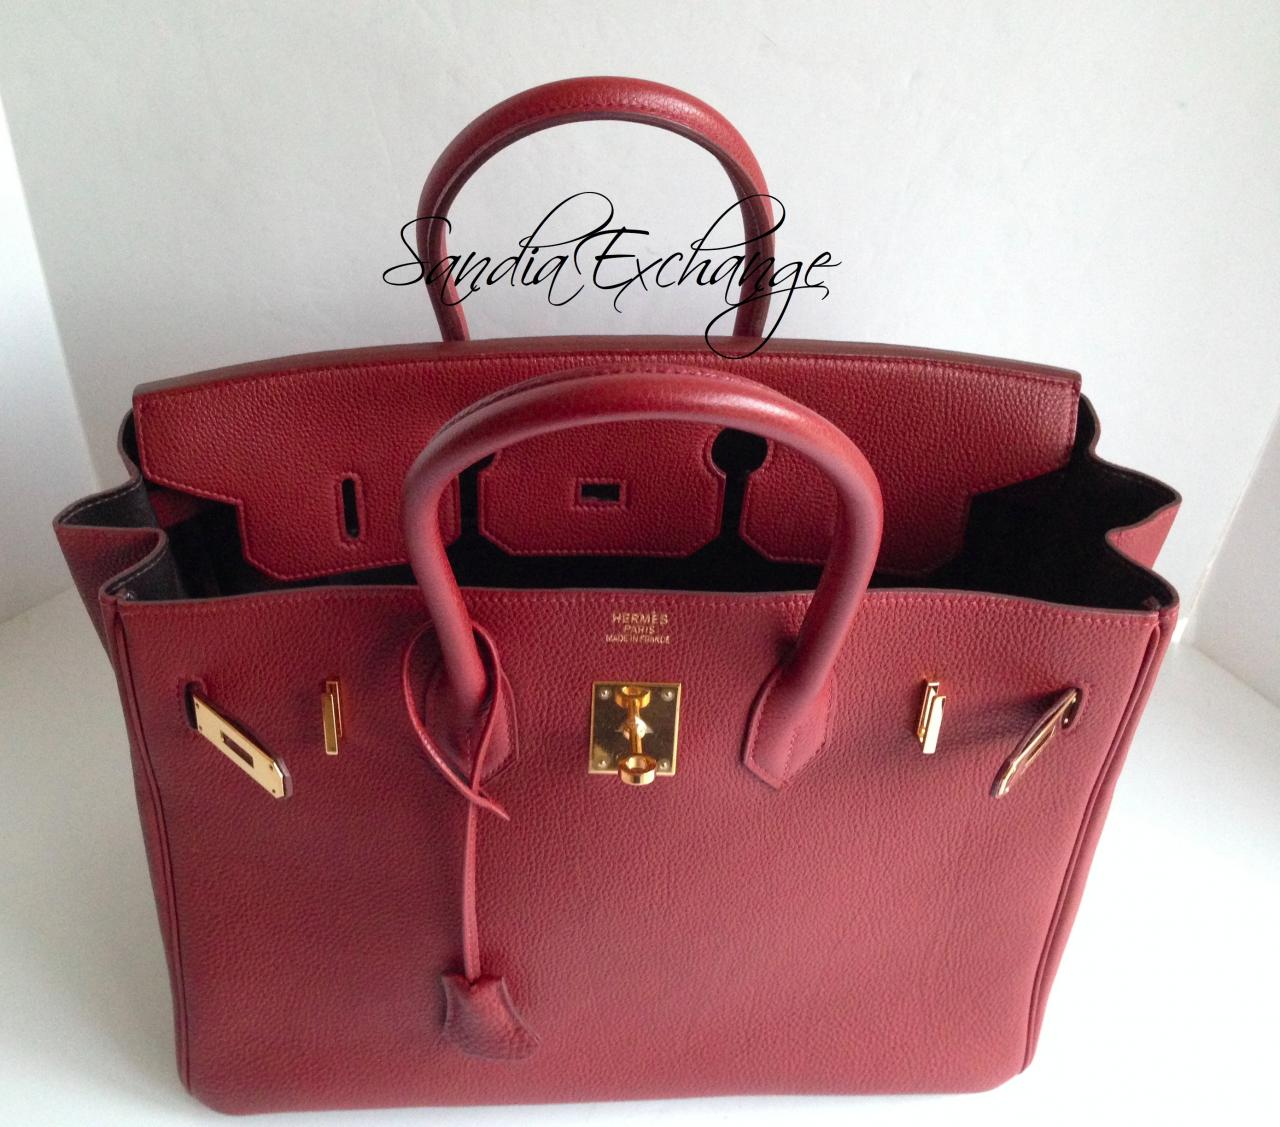 authentic-hermes-birkin-35-cm-rouge-ebene-bi-color-togo-palladiumhardware-rare-3.jpg